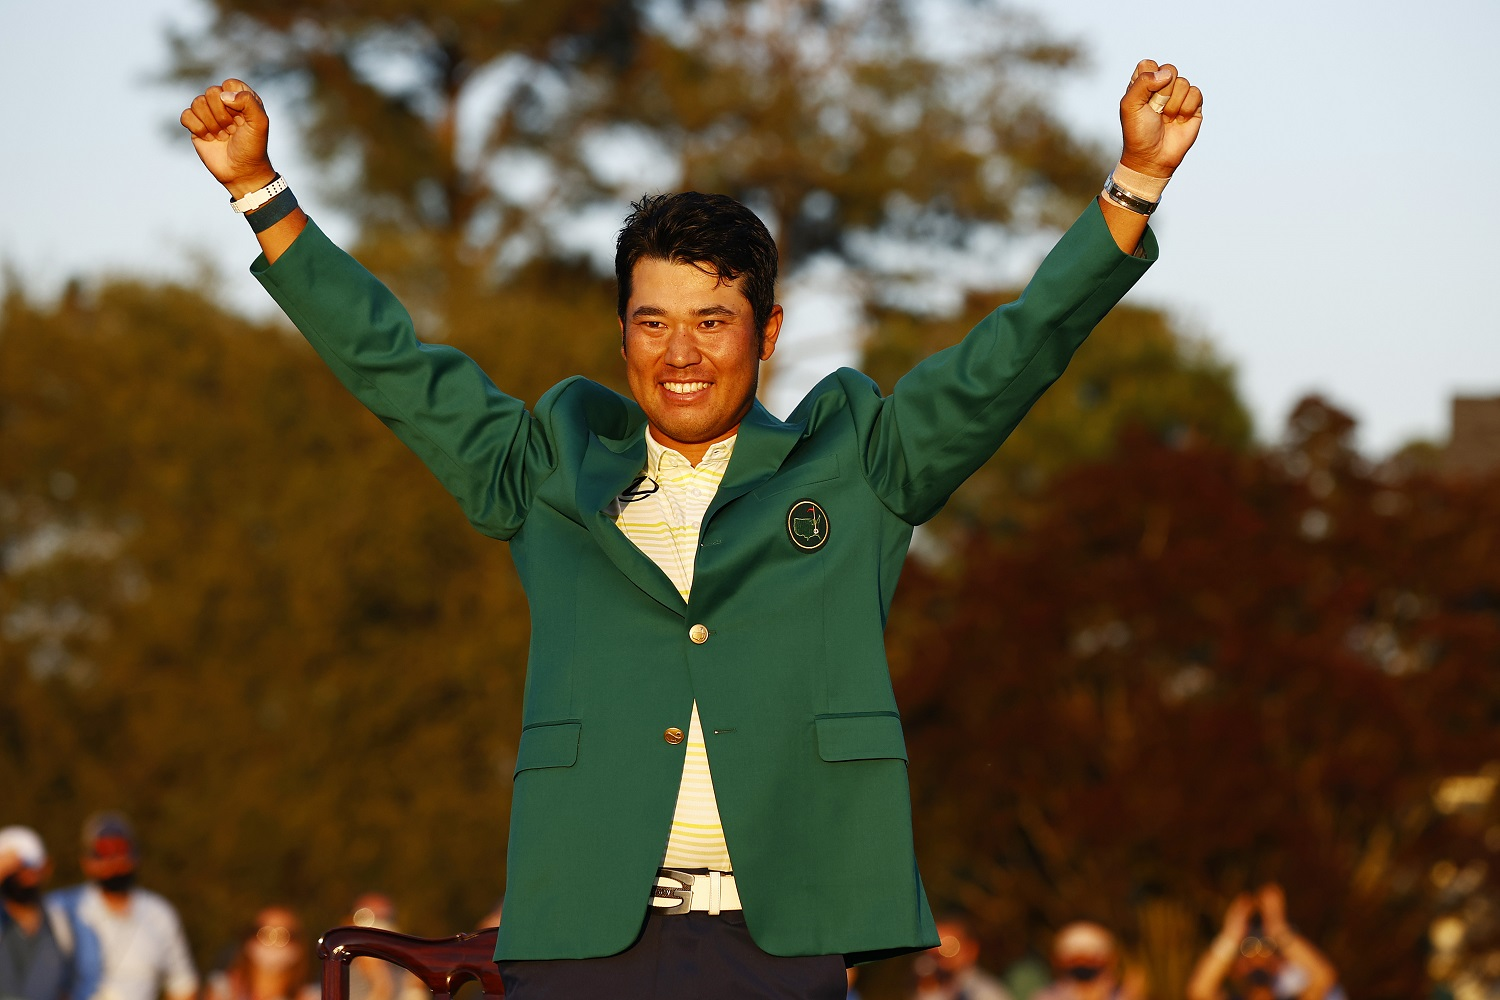 Hideki Matsuyama celebrates during the Green Jacket ceremony after winning The Masters at Augusta National Golf Club. | Jared C. Tilton/Getty Images